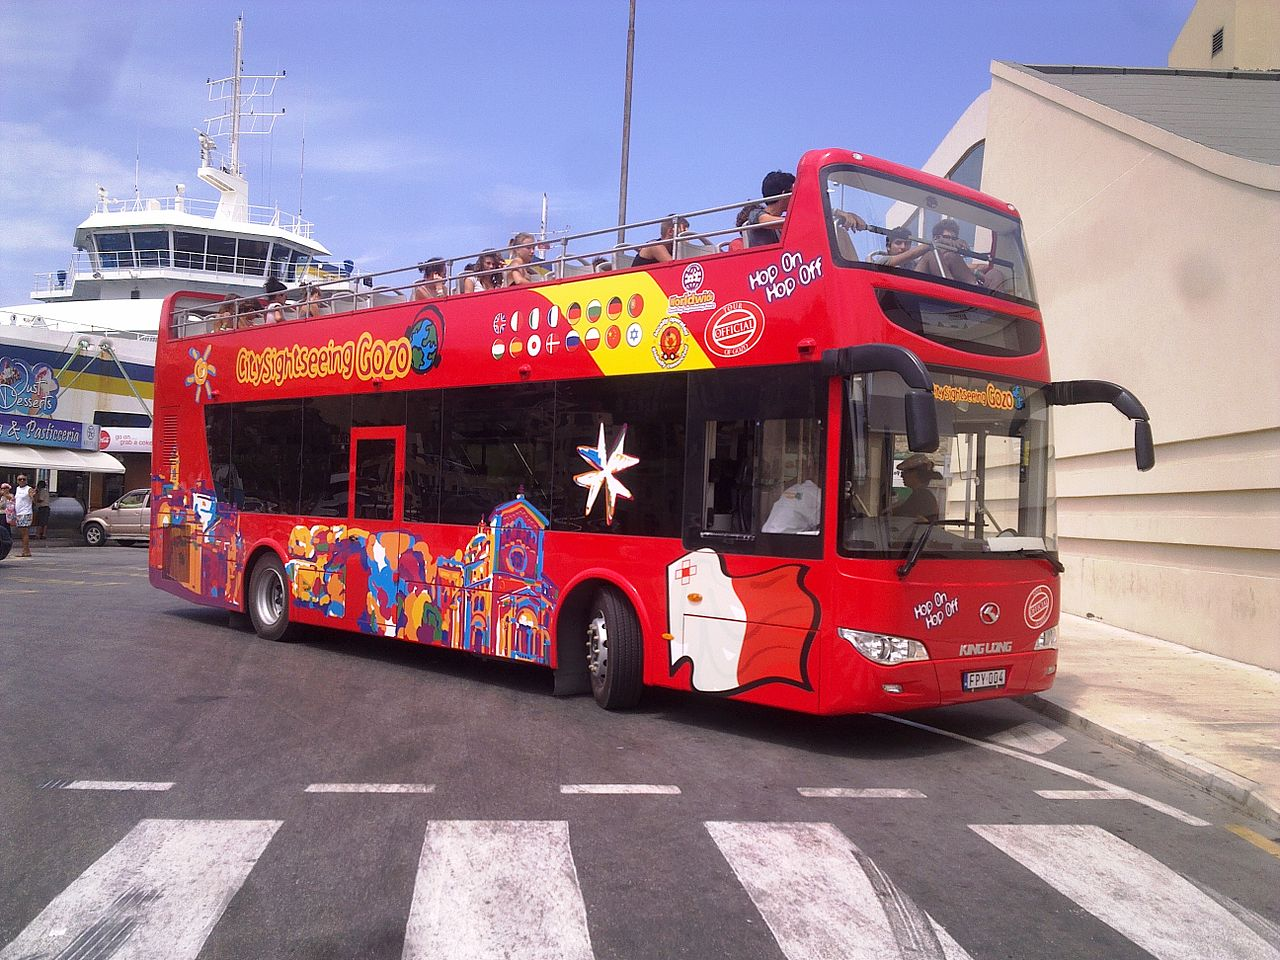 Brussels Sightseeing Tours Bus